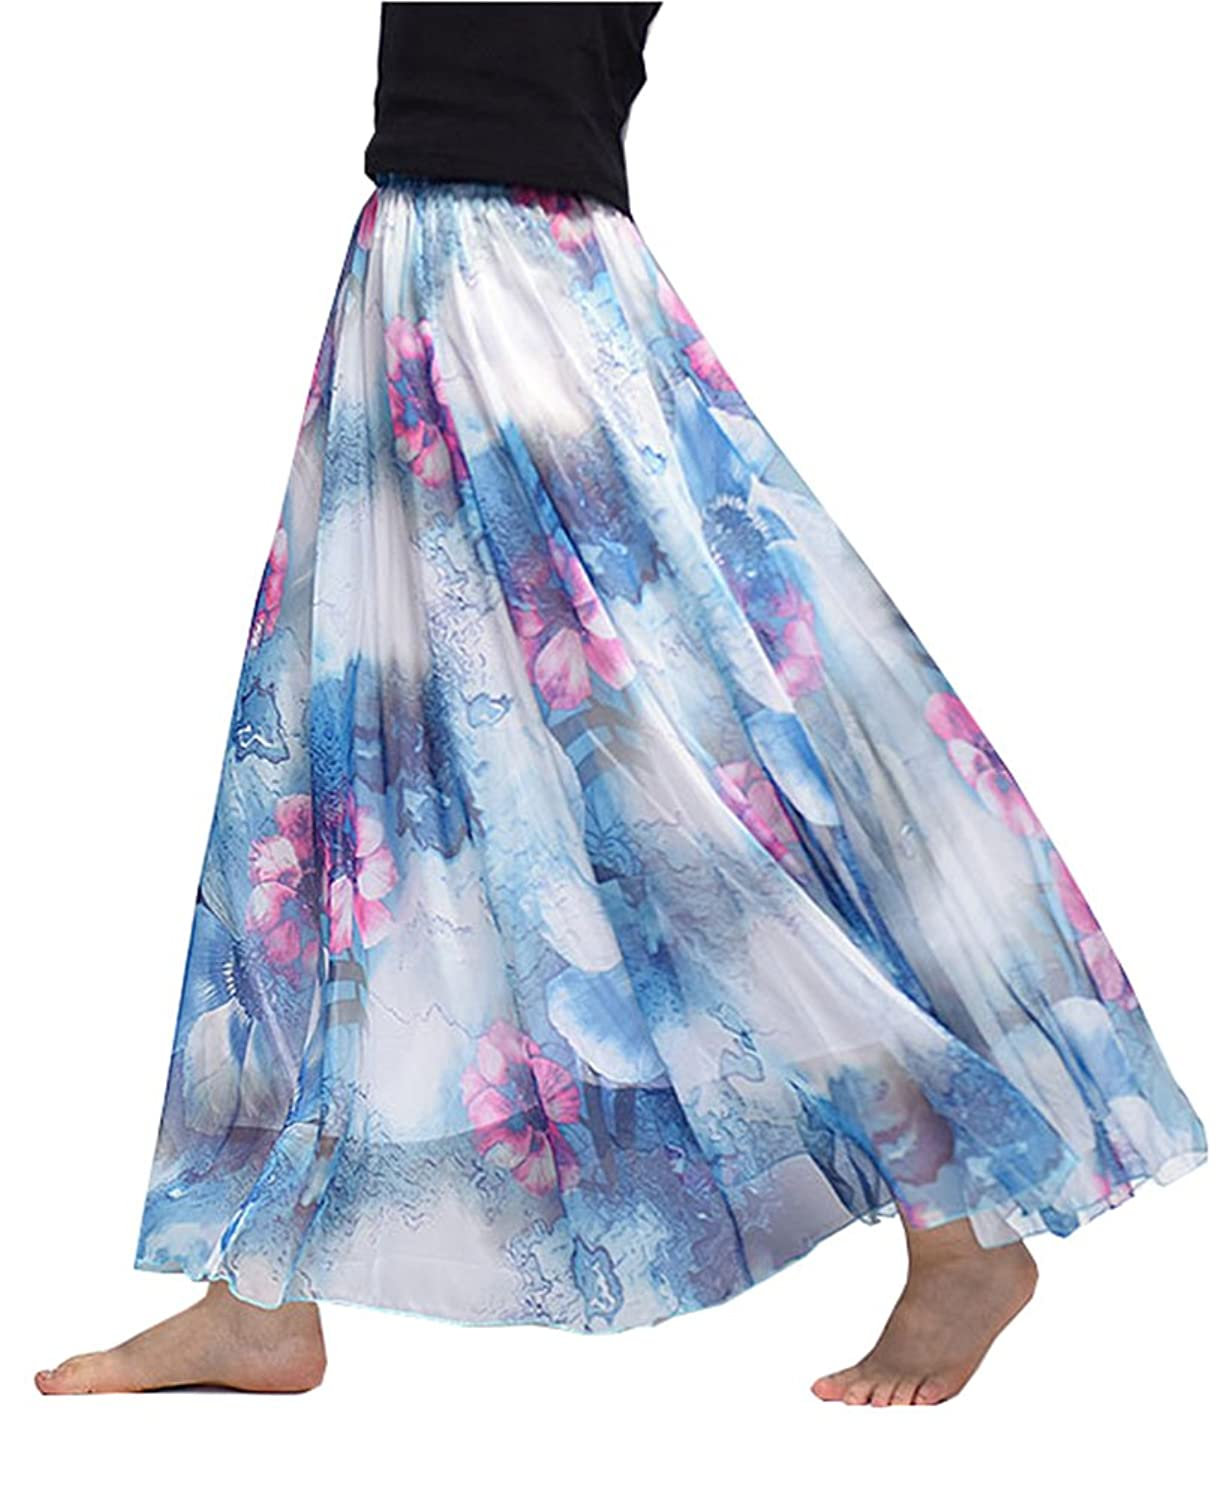 819b0d20e5 Design:A-line Flowy Floral pattern maxi Skirt,Bohemian Style,Elastic  Waistband,Full/Ankle Length Occasion: Daily wear, various for ...